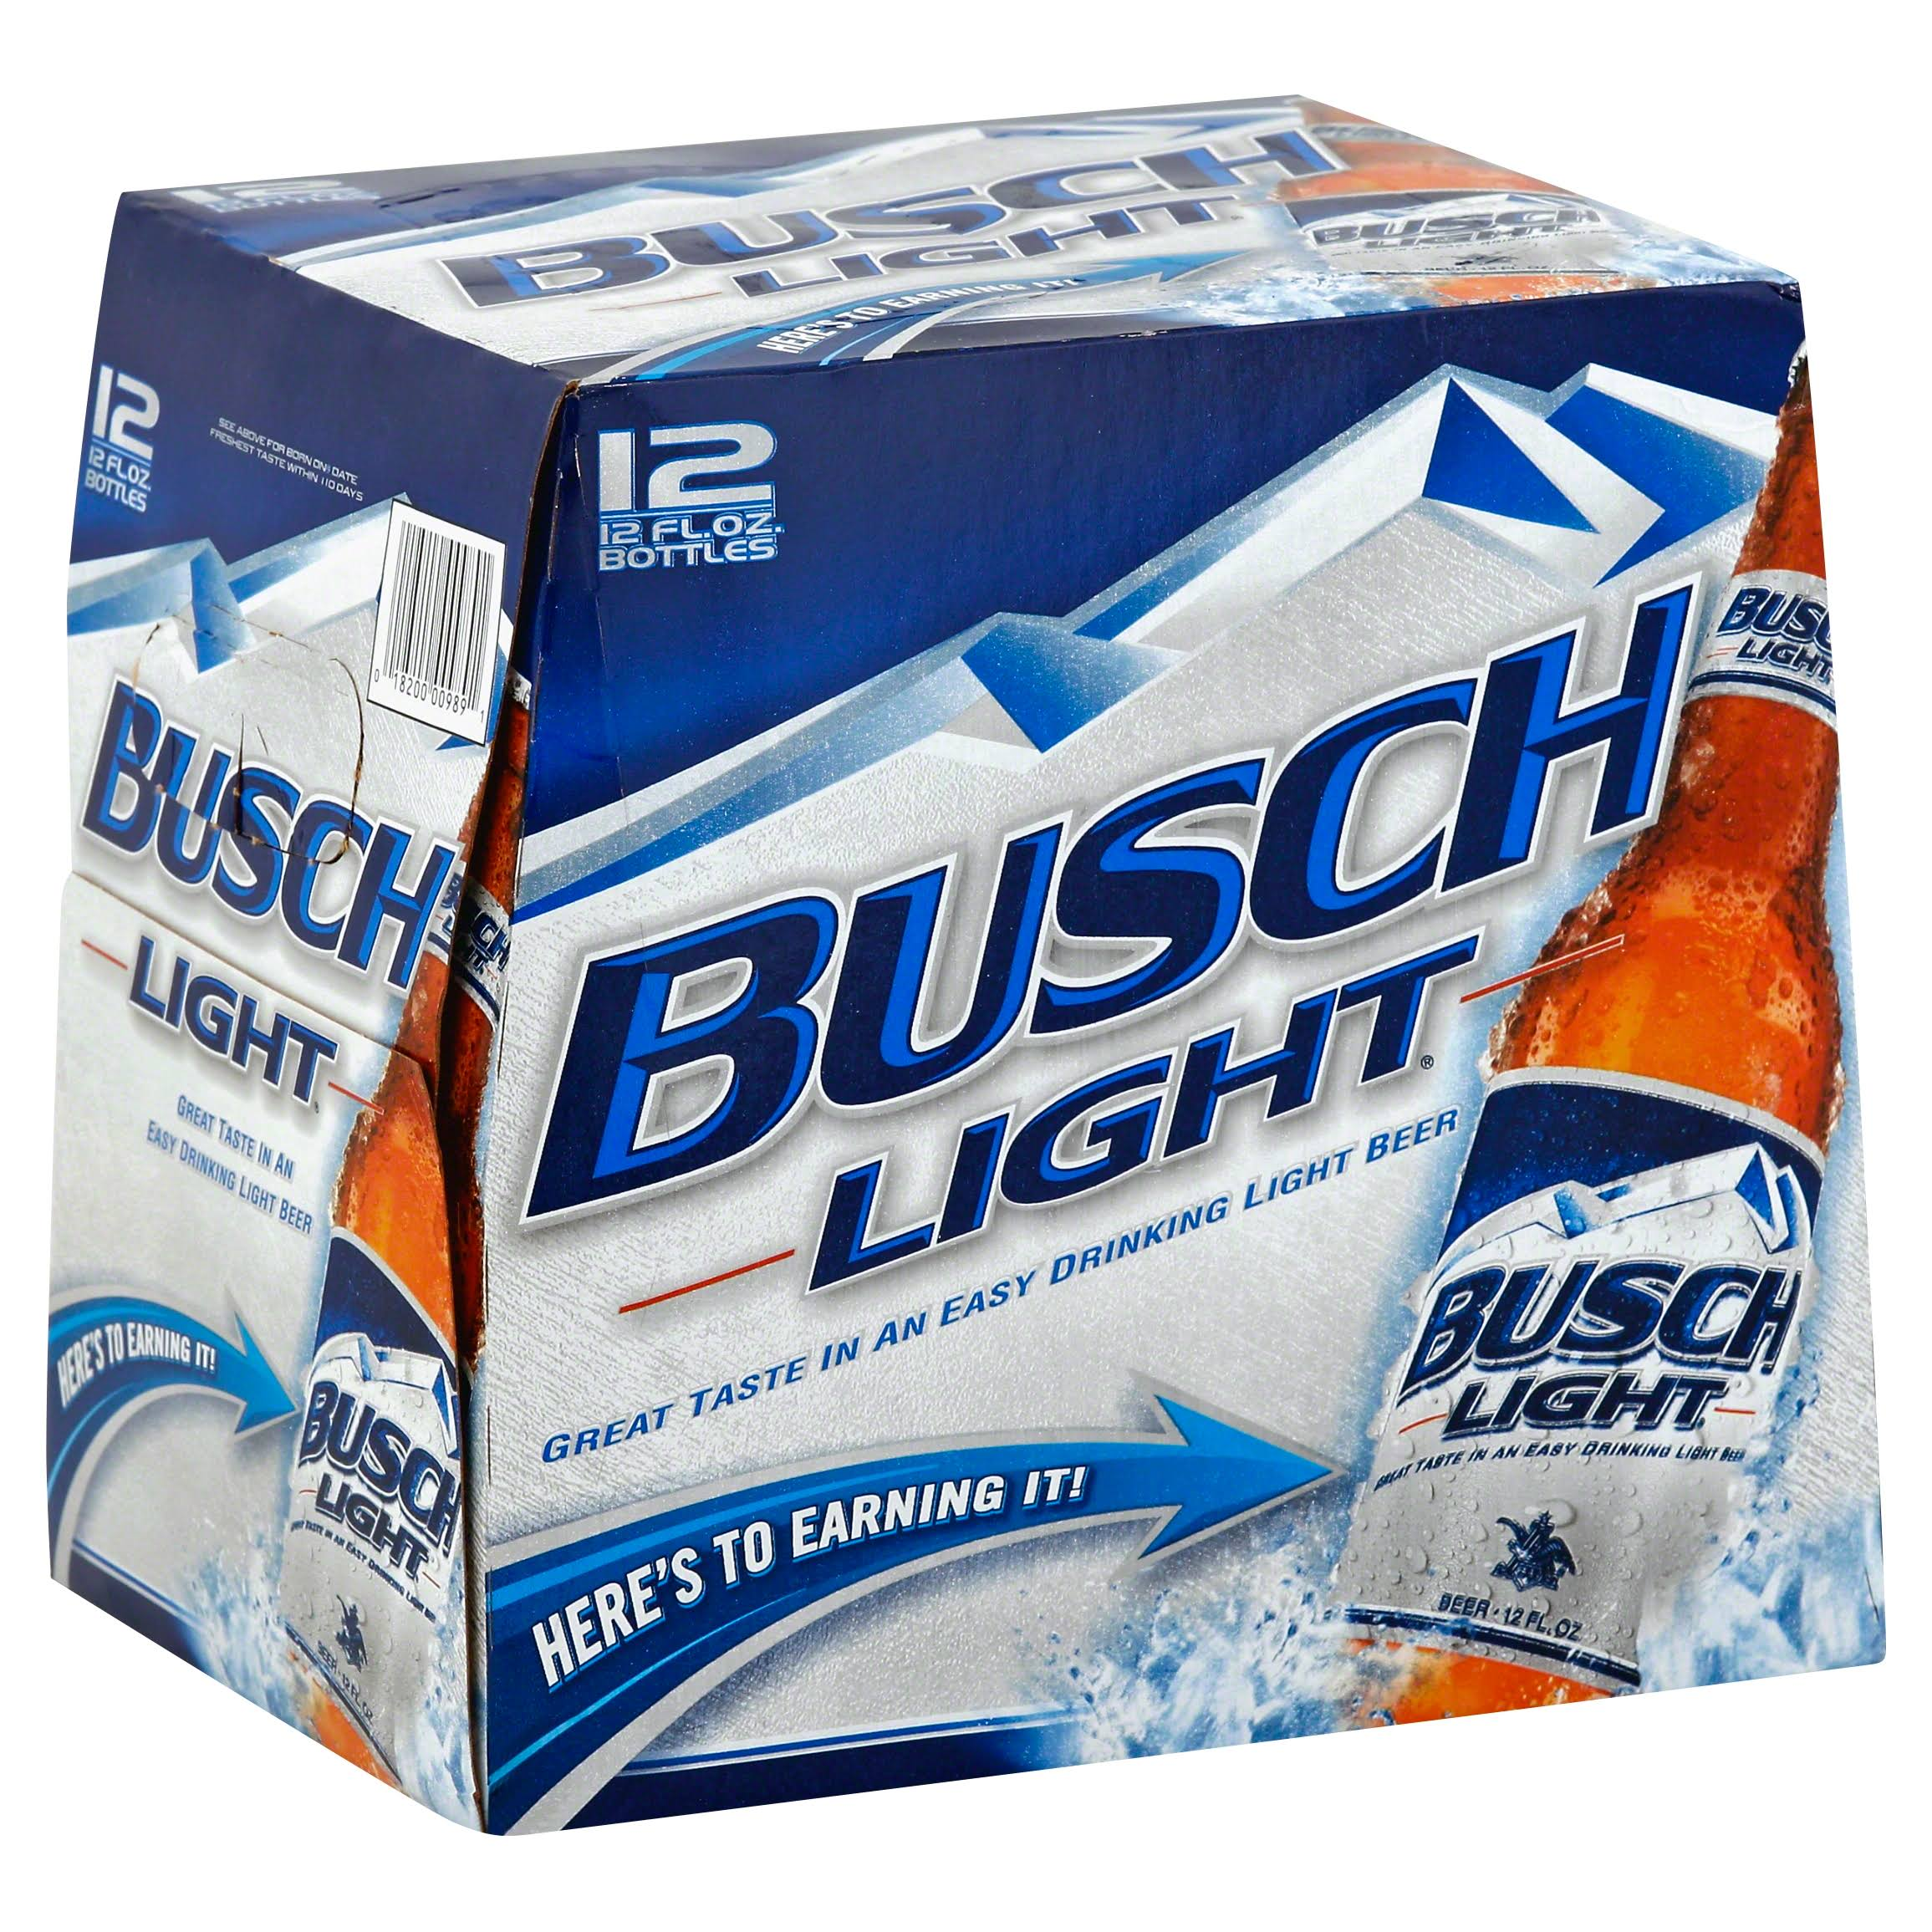 Busch Light Beer - 12 pk, 12 oz